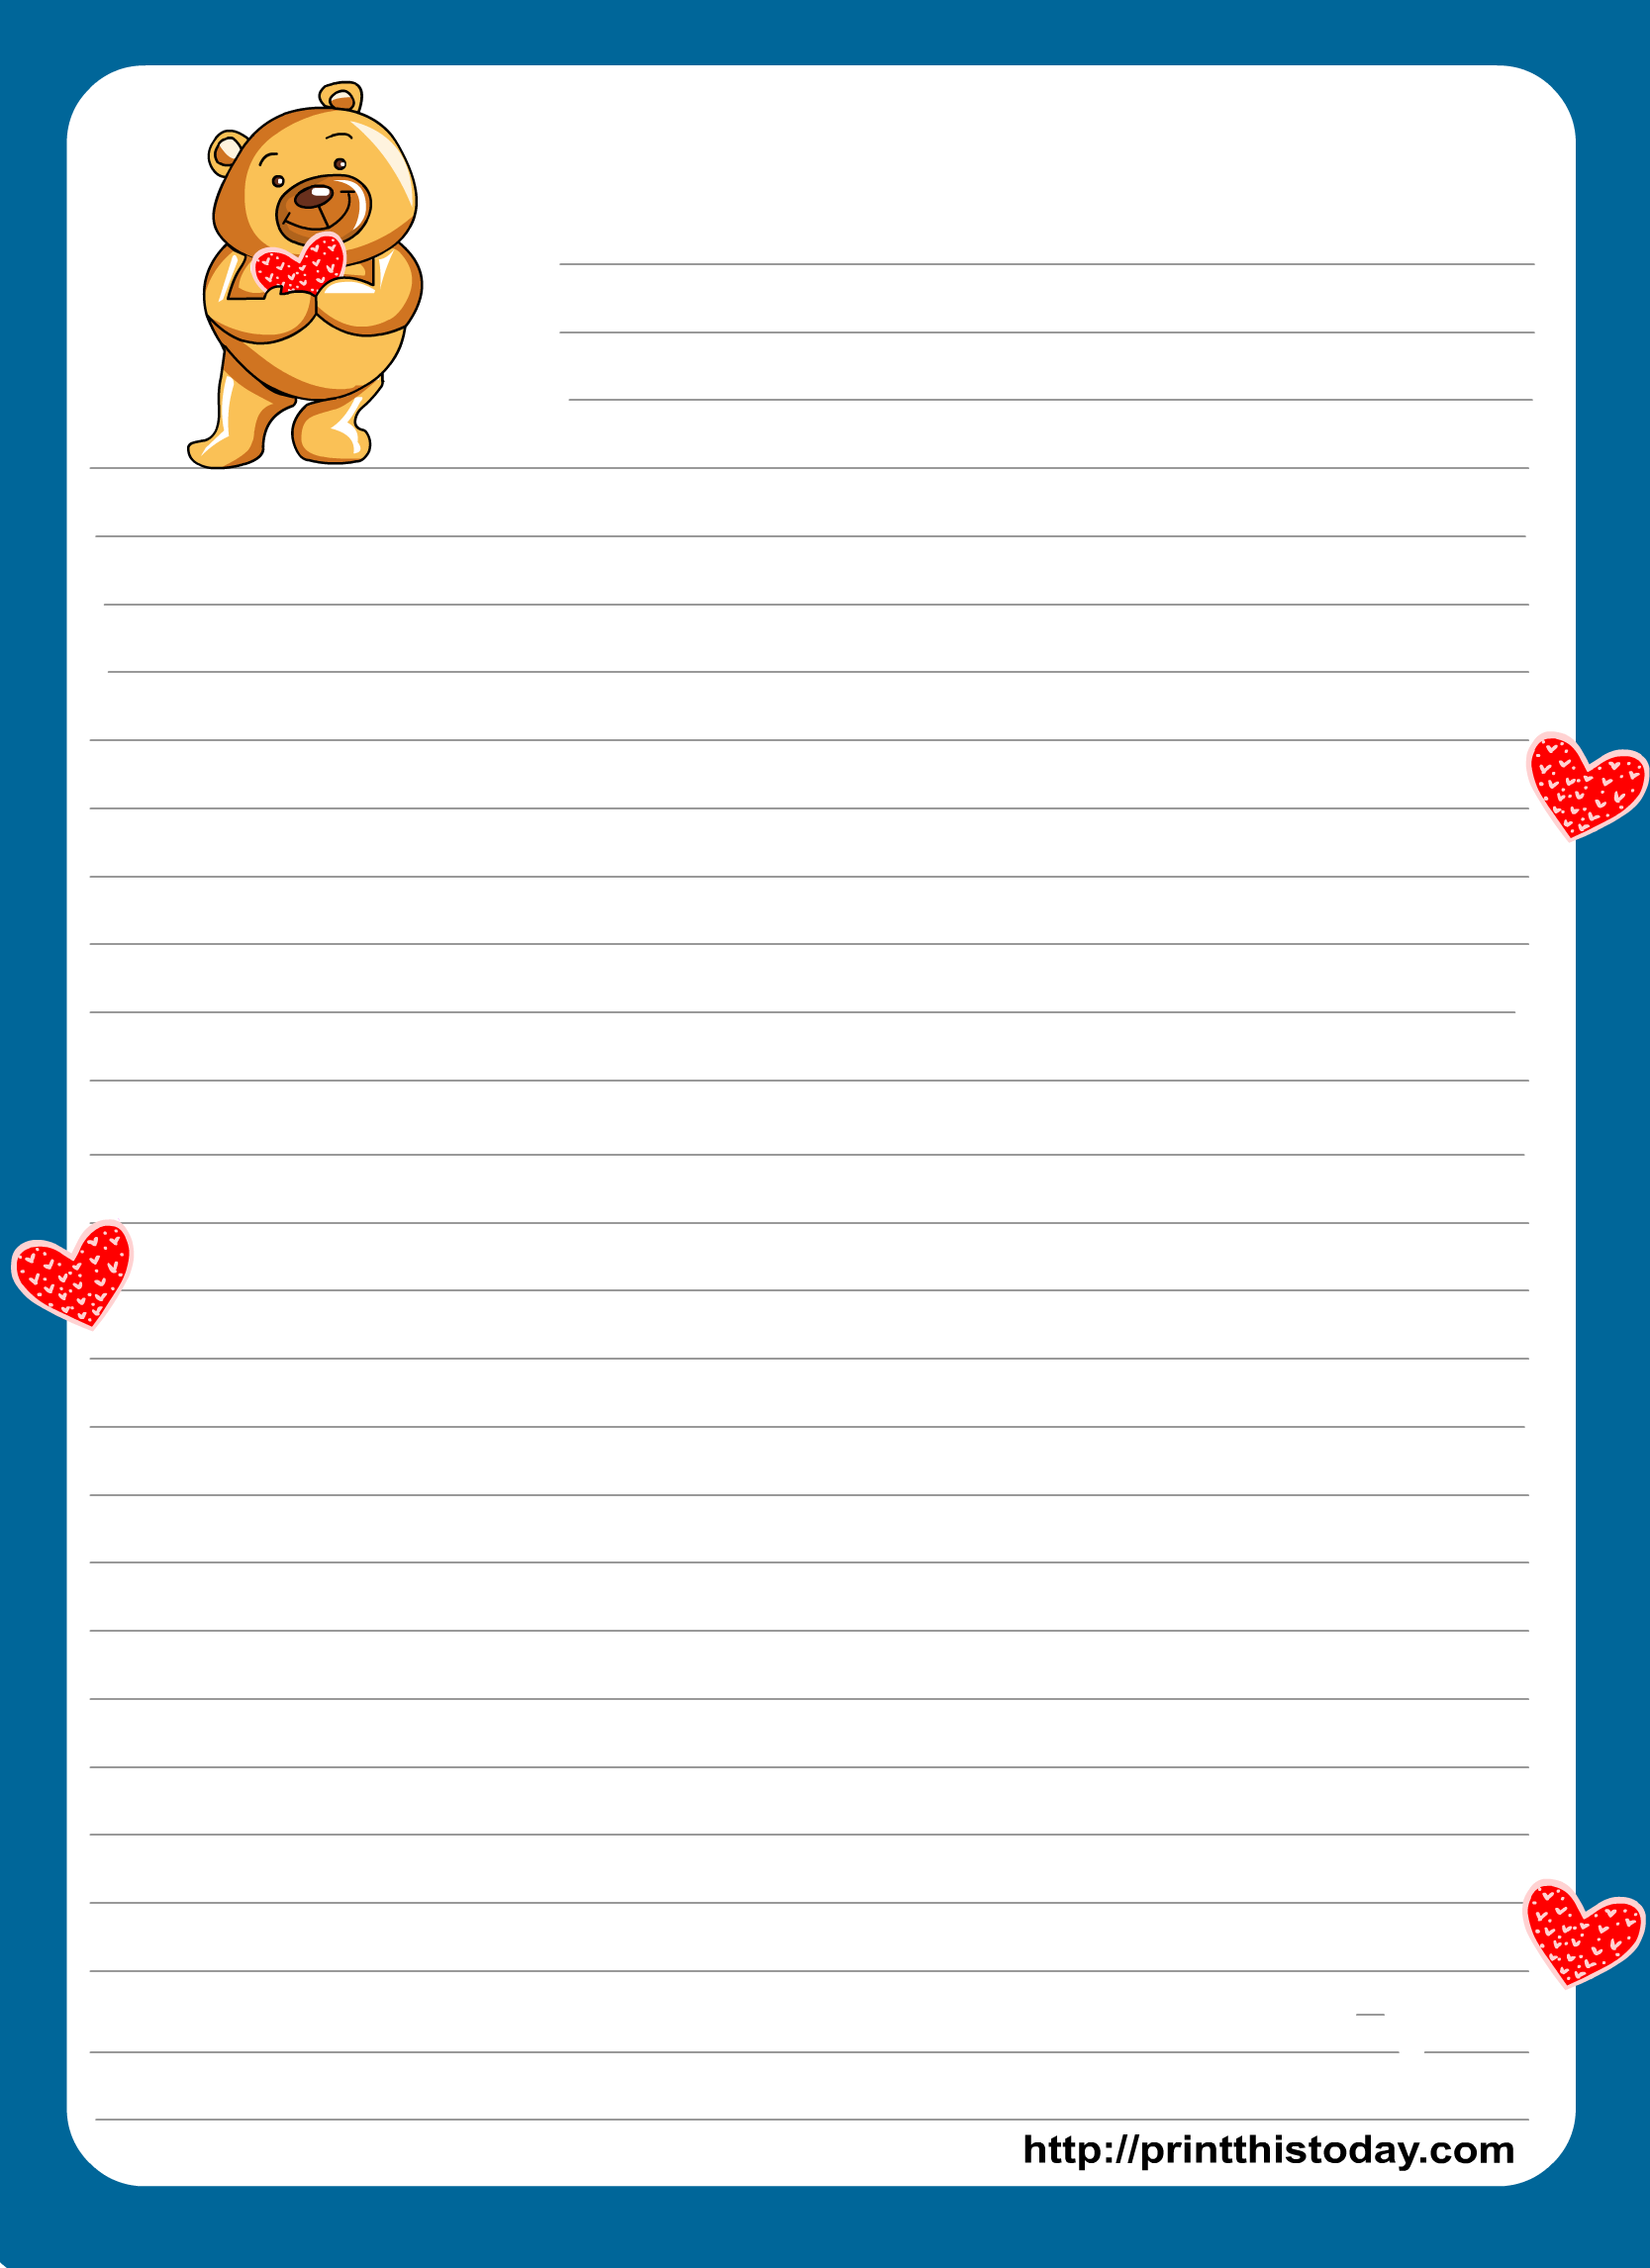 image regarding Printable Stationary for Kids referred to as Teddy Endure creating paper for Little ones